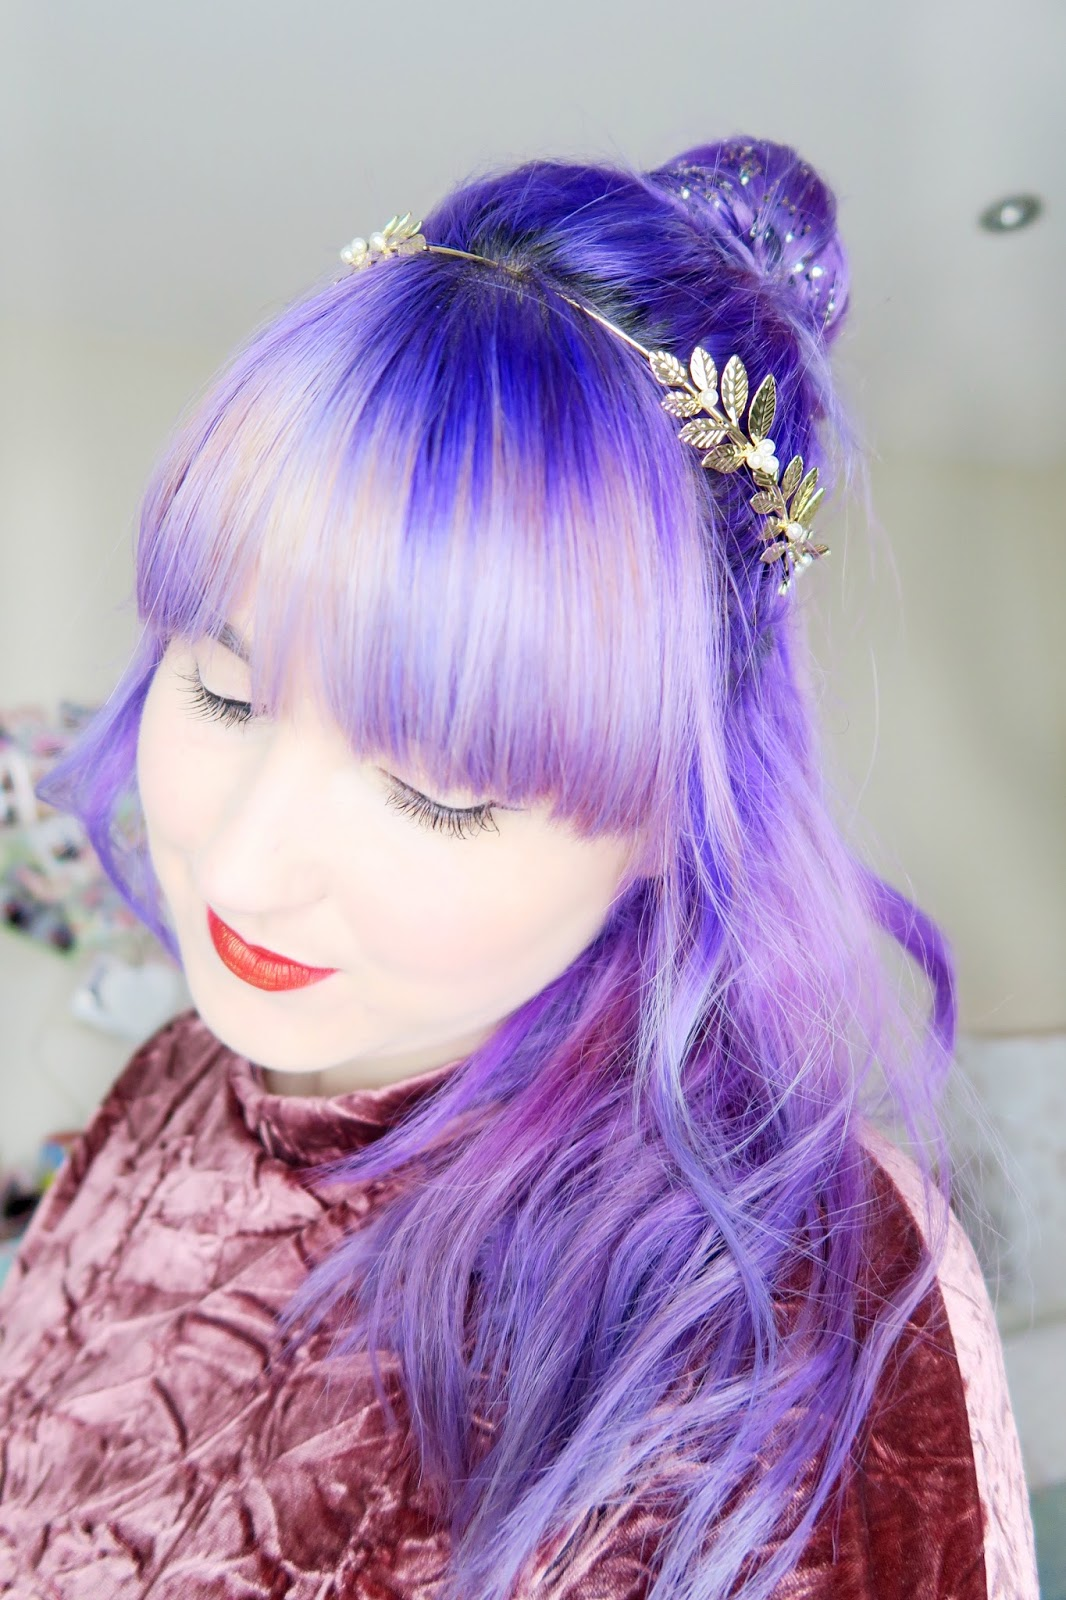 an image of a party hair do with glitter bun